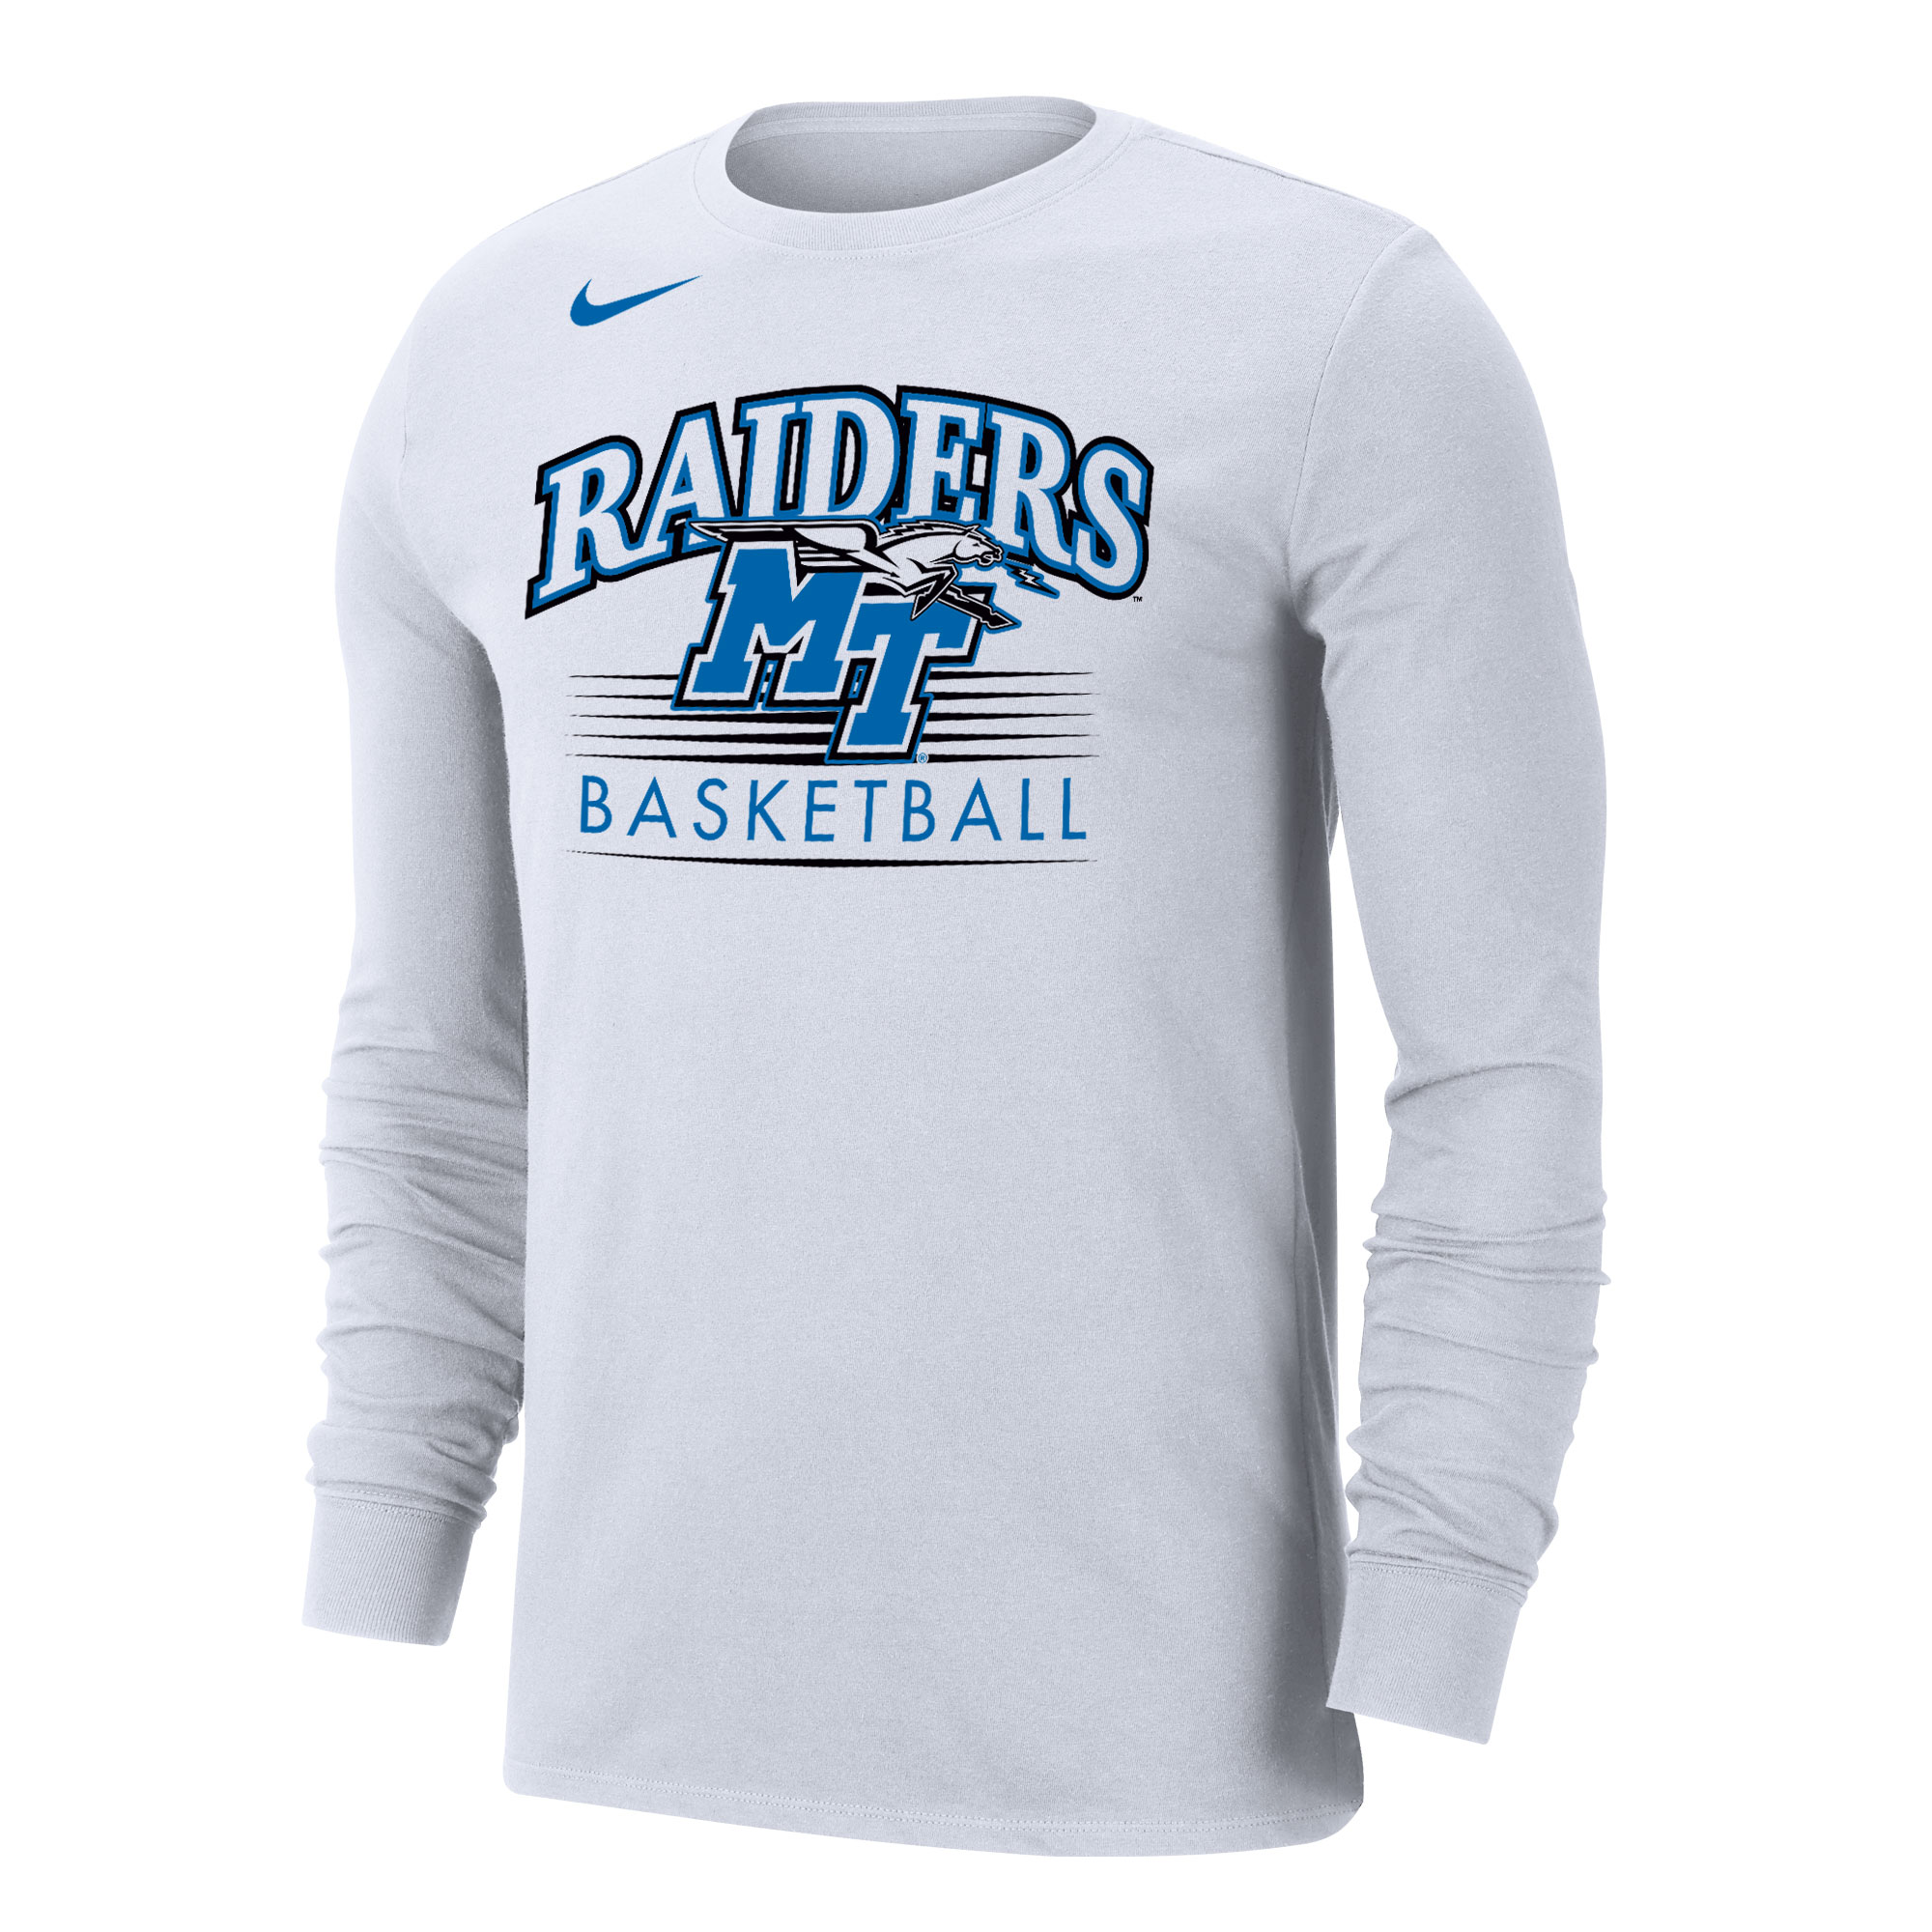 Raiders MT Logo w/ Lightning Basketball Nike® Dri-Fit Cotton Long Sleeve Shirt